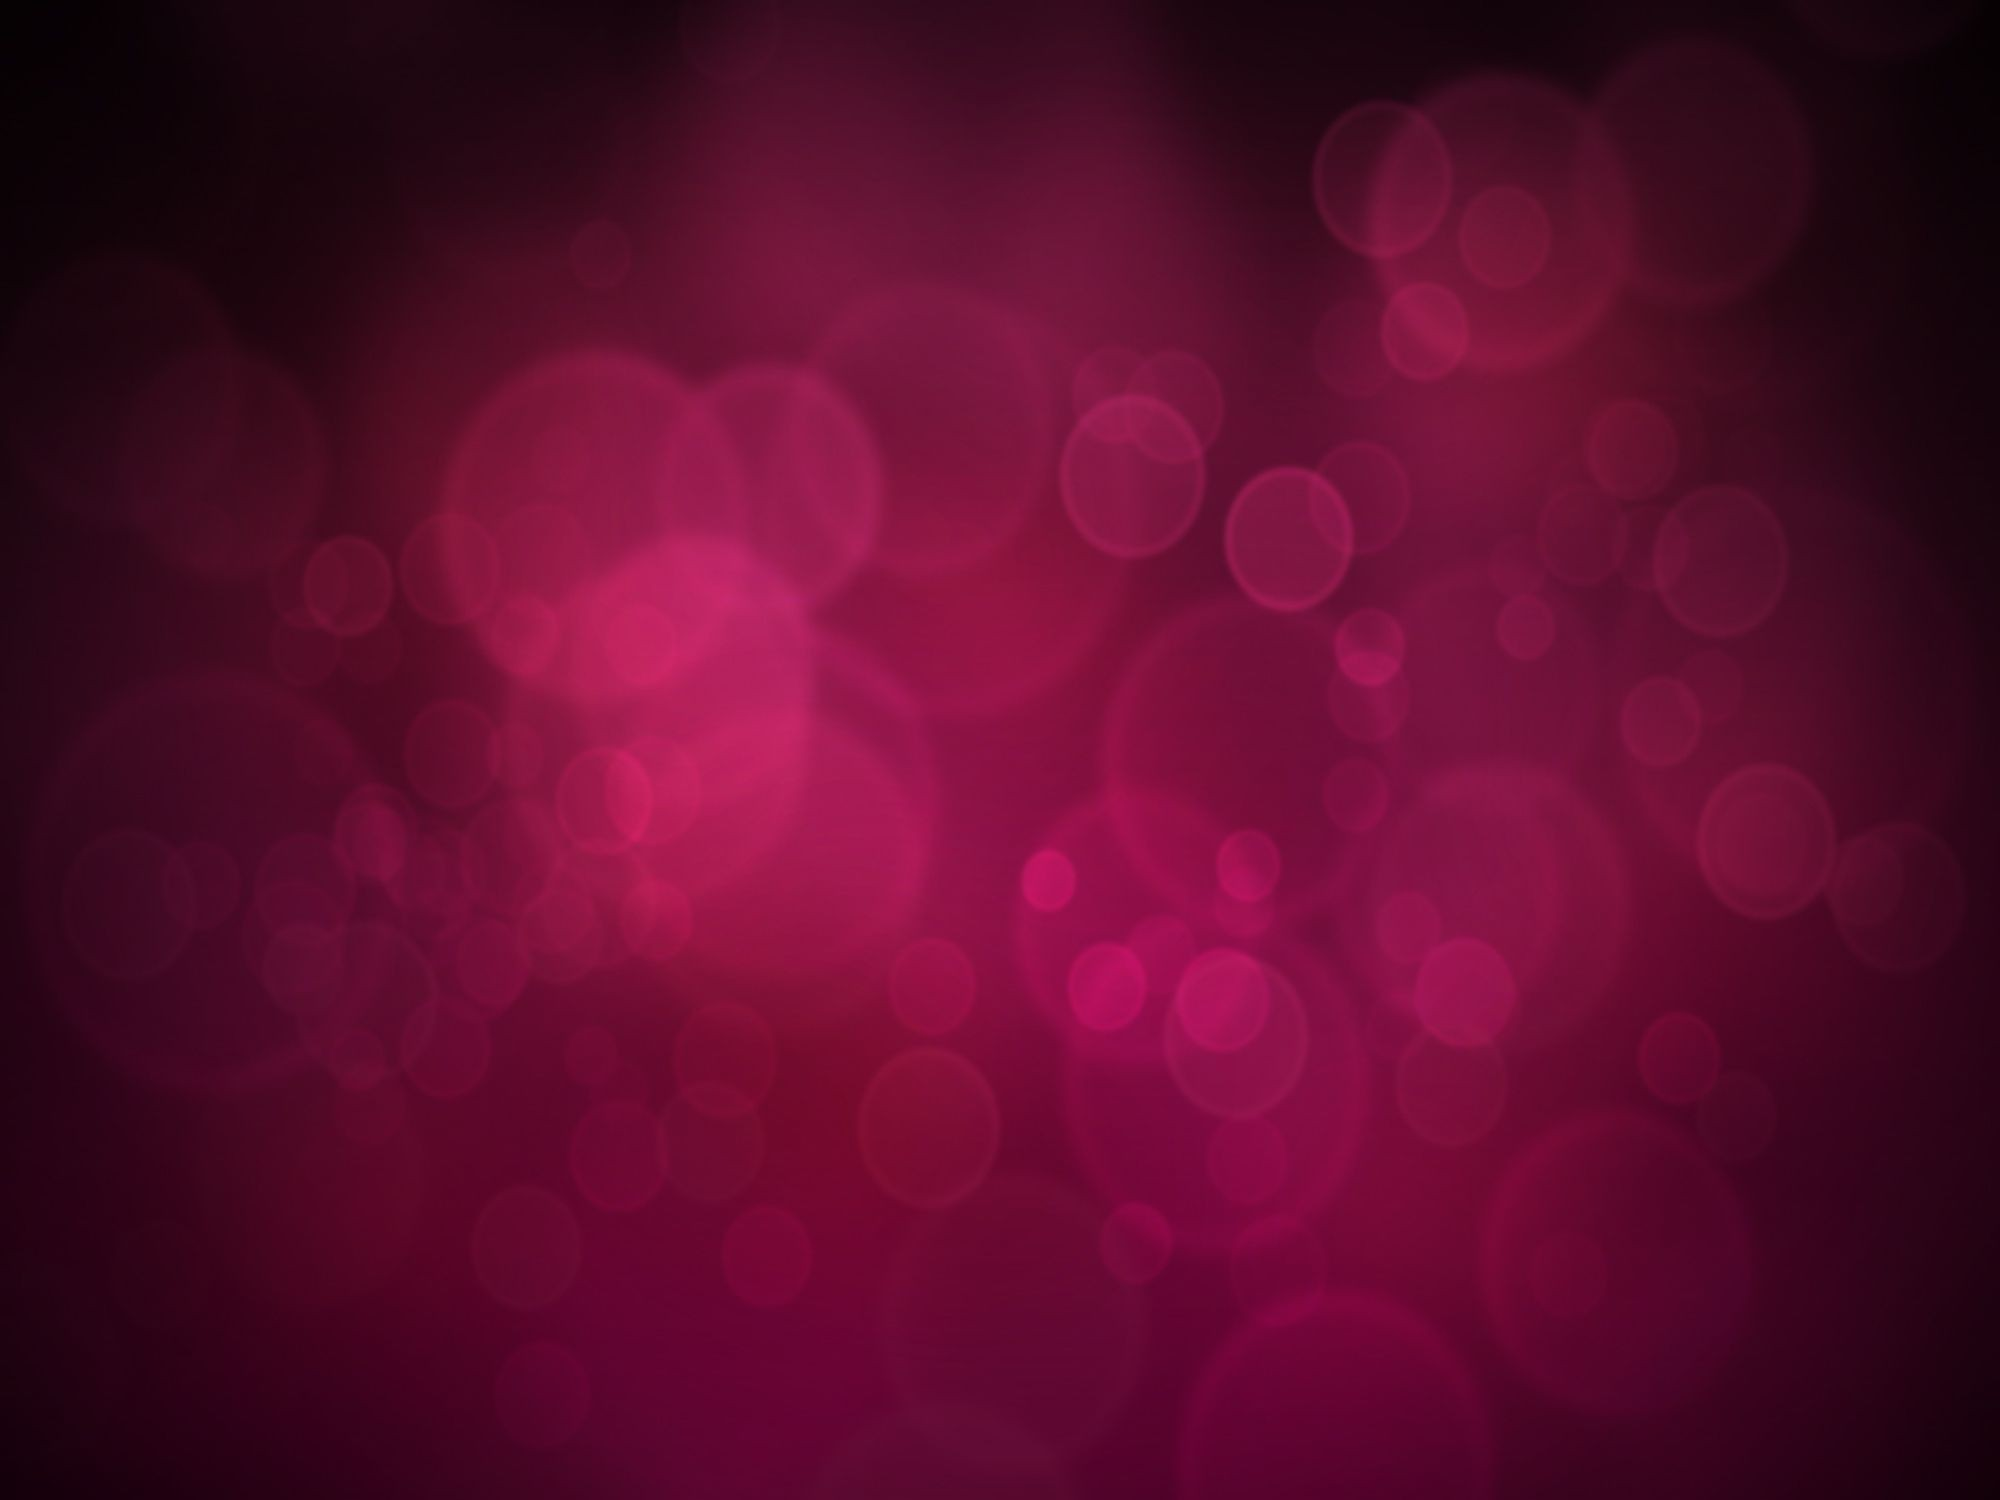 pink and black background ·① download free beautiful hd backgrounds